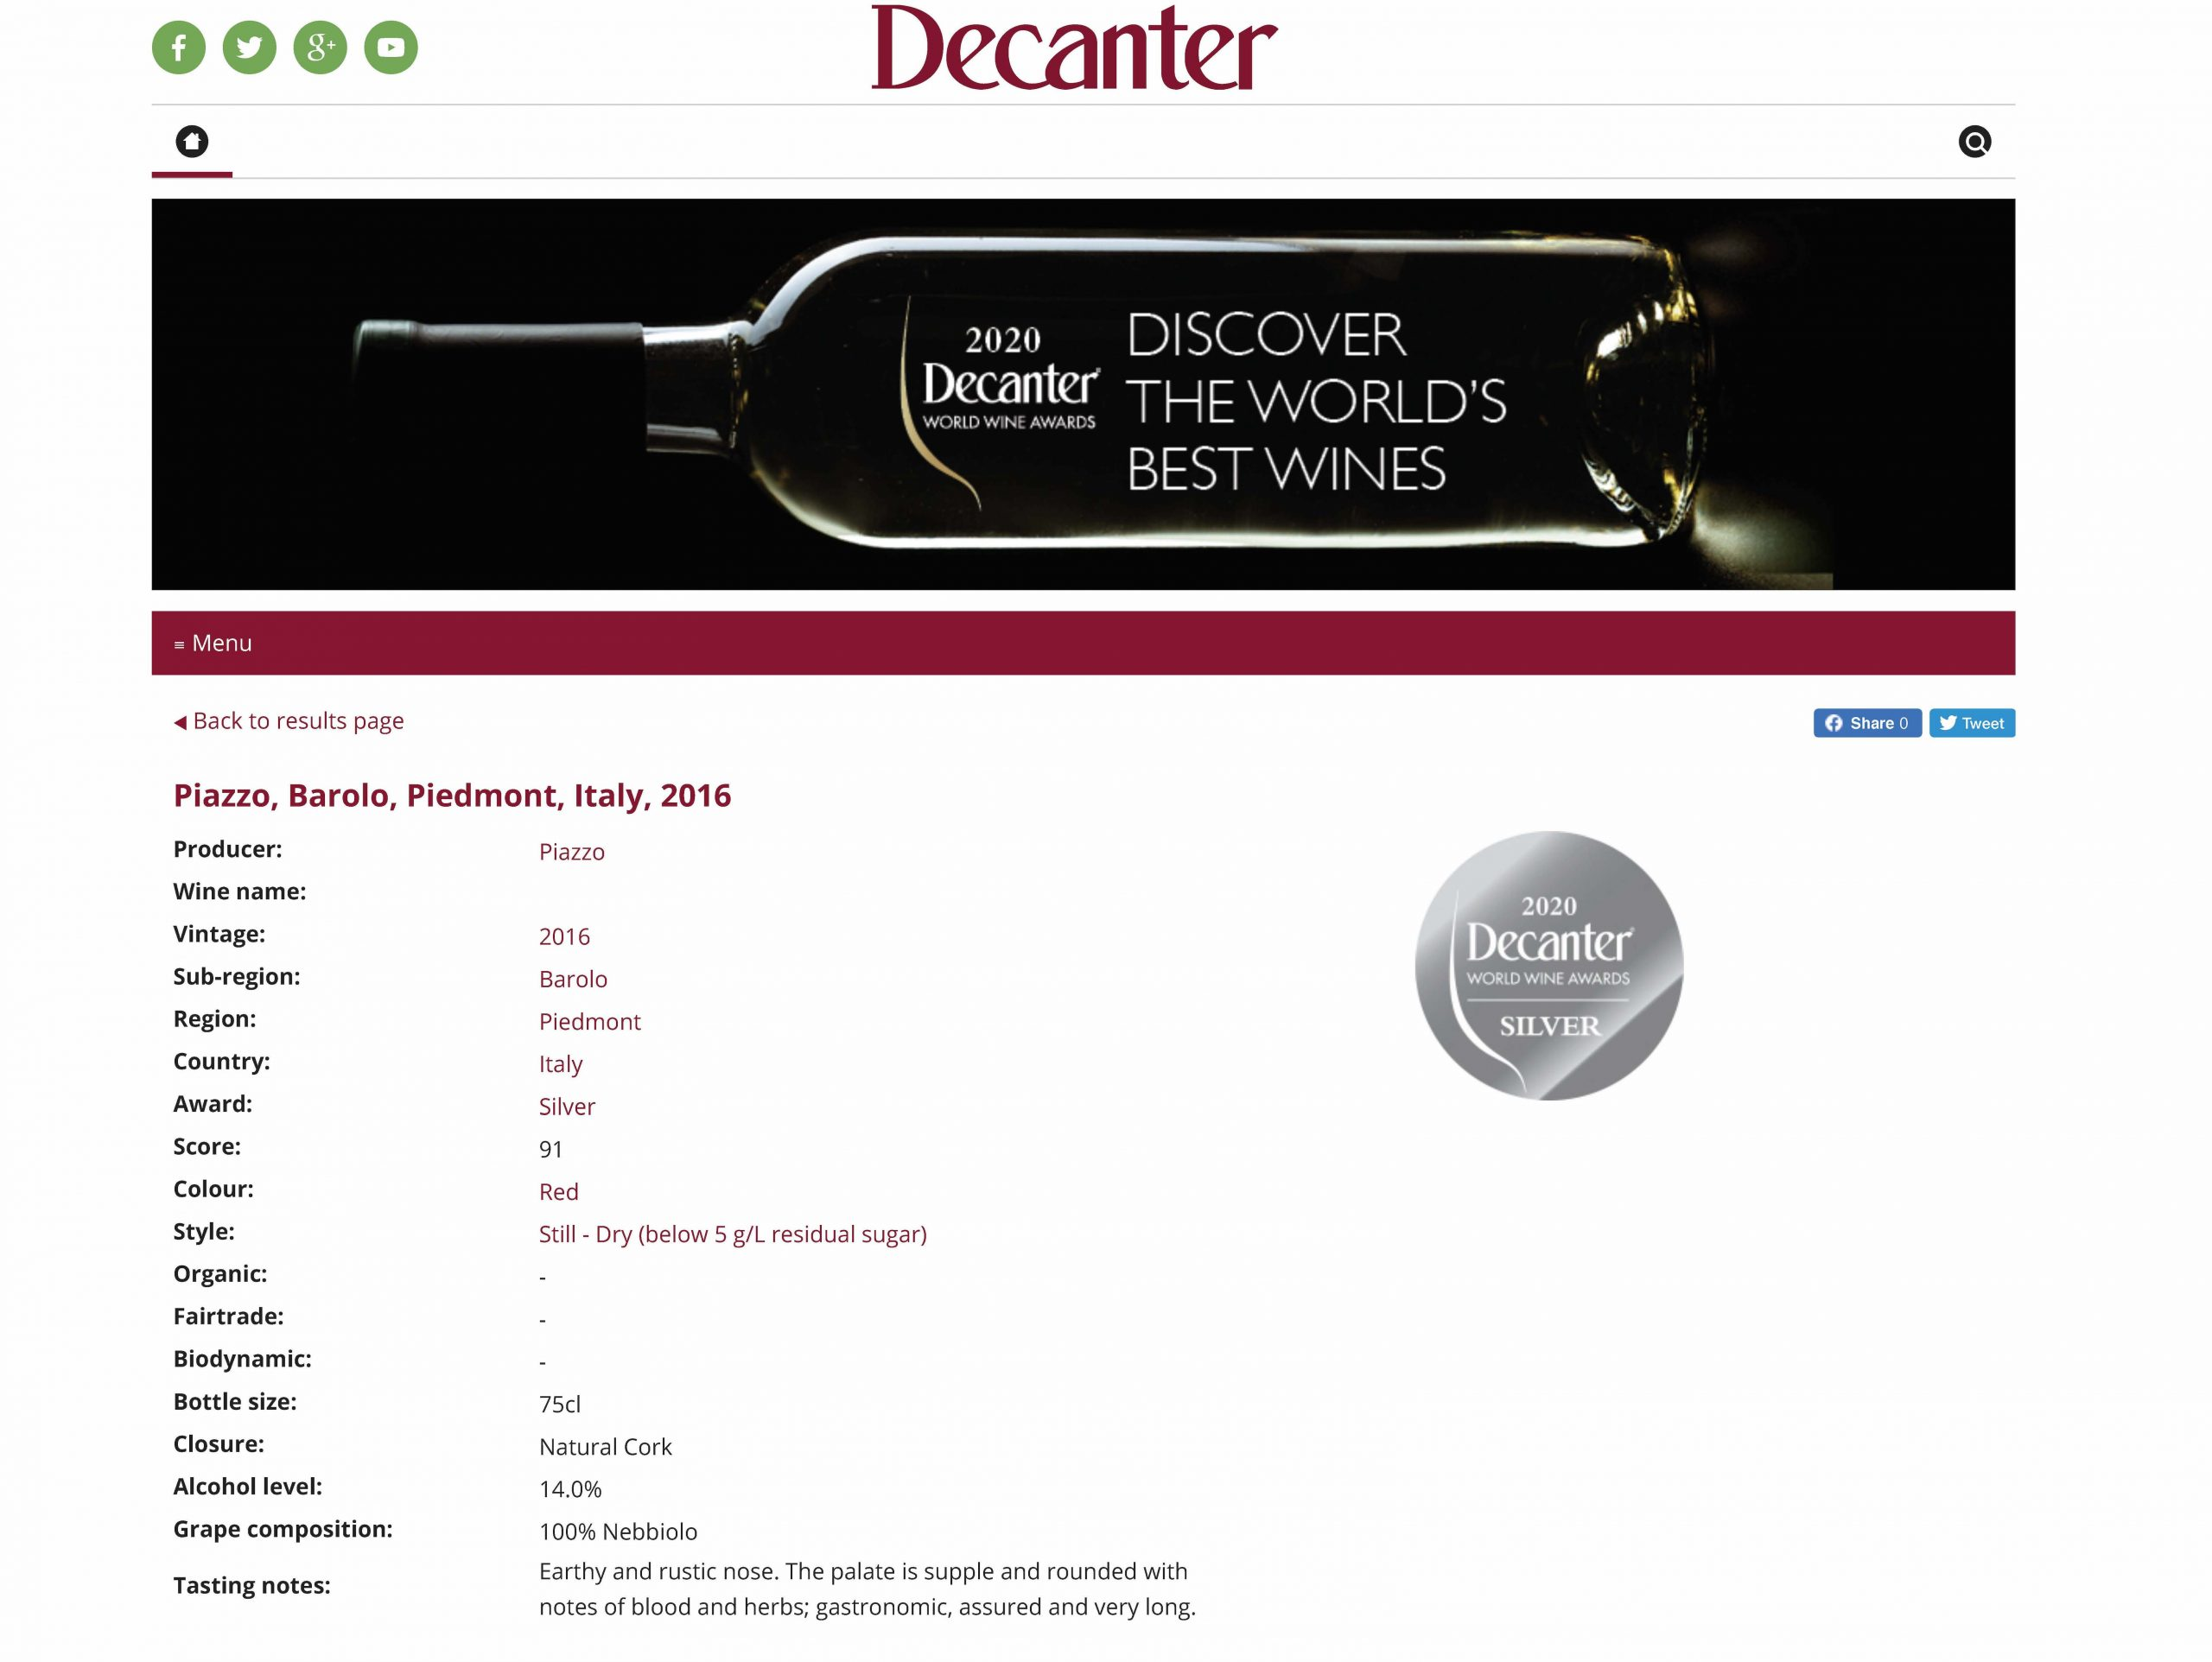 https://www.angeliniwine.com/wp-content/uploads/2020/12/Decanter-World-Wine-Awards-winning-wine-scaled.jpg